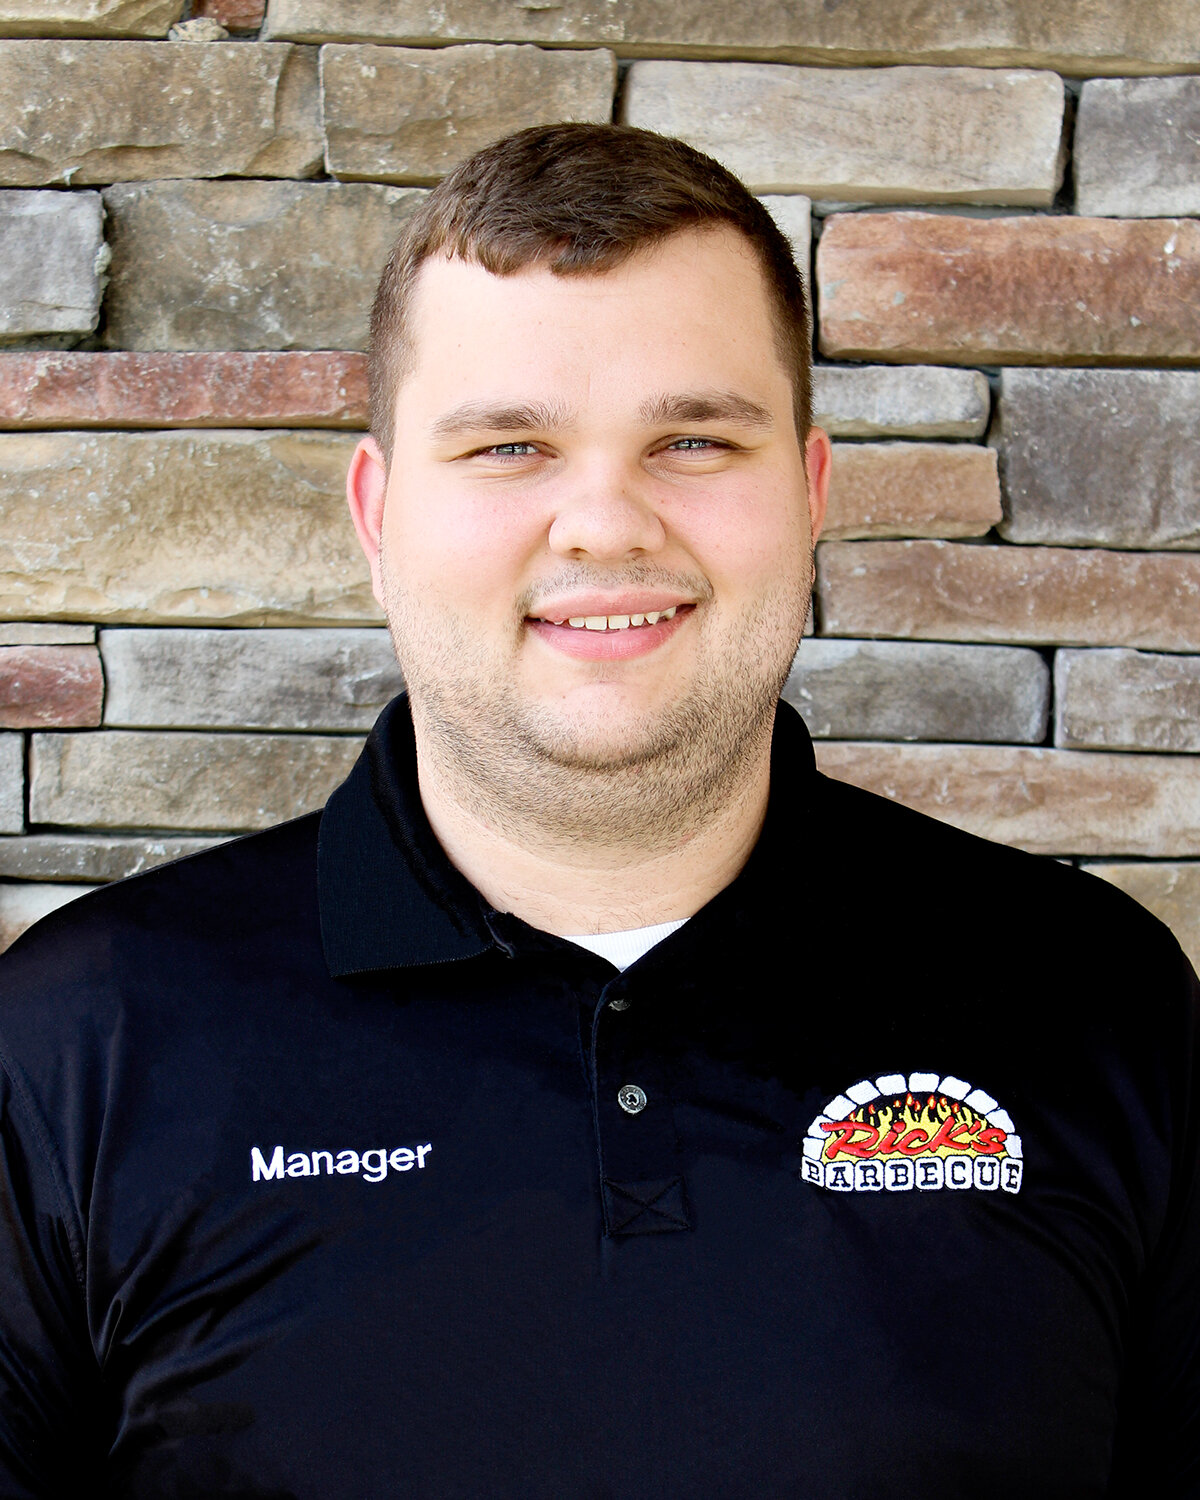 Florence manager: dakota gray    dgray@ricksbbq.com